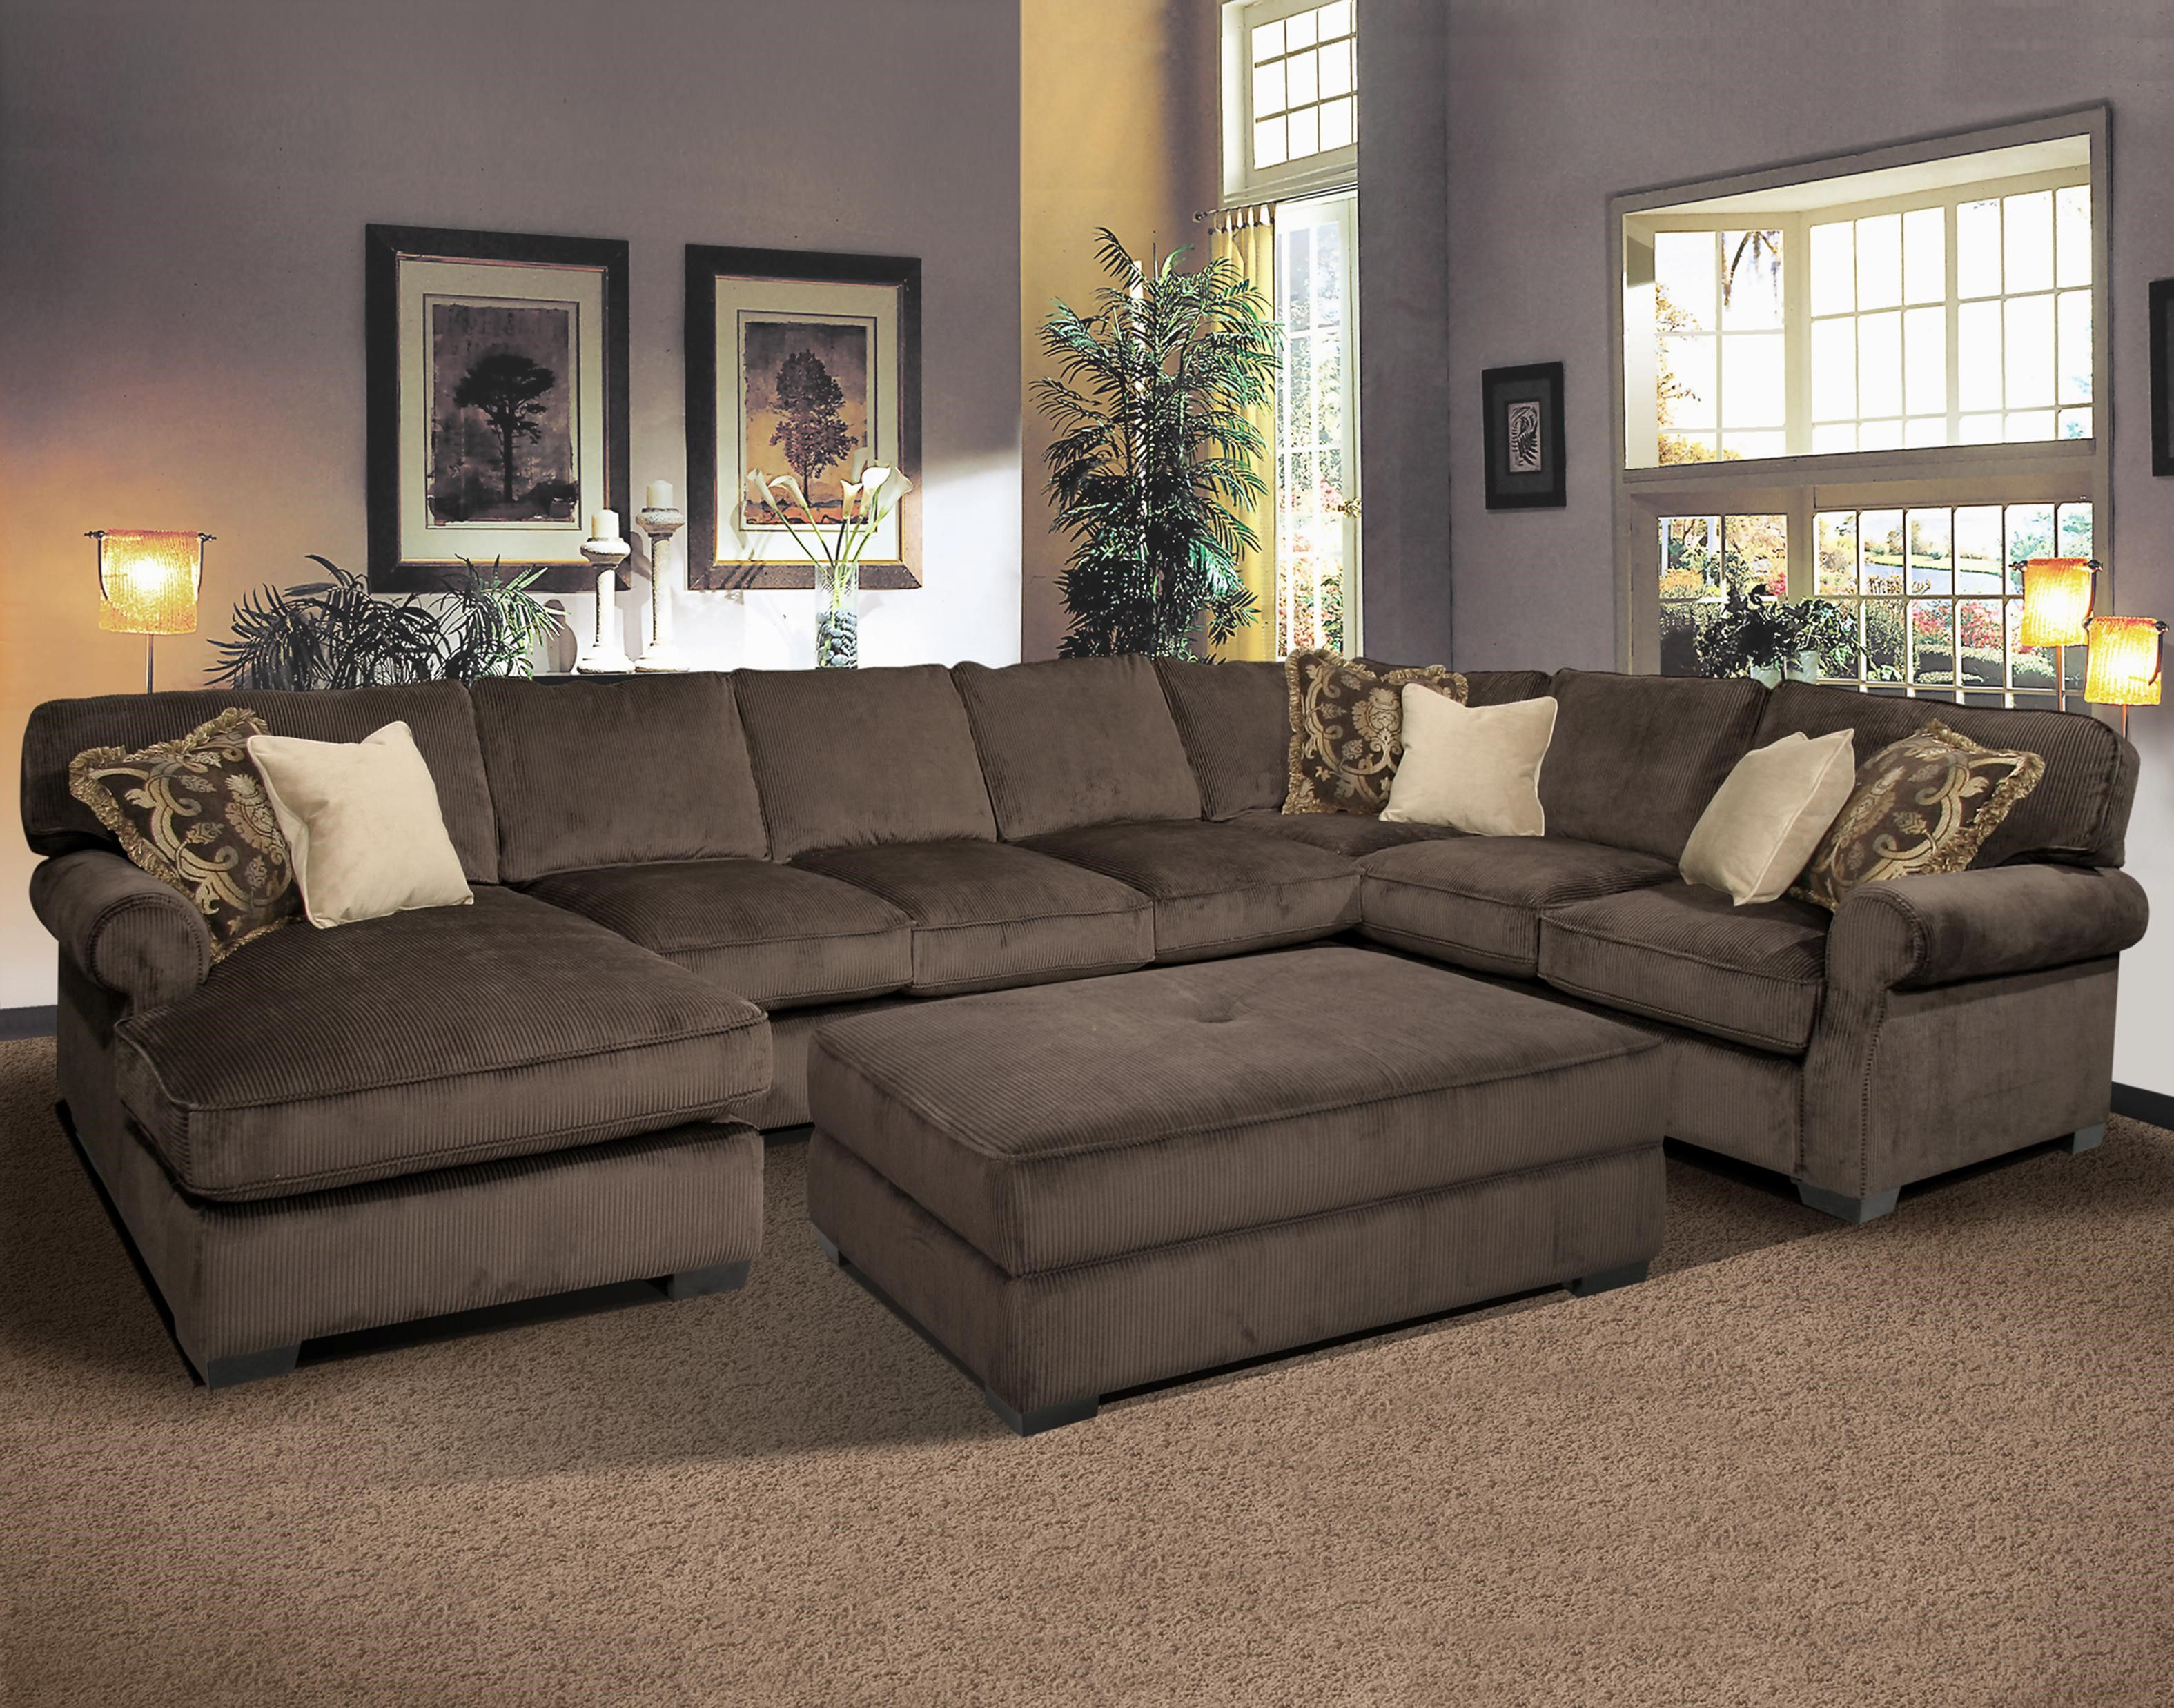 Image for Overstuffed Sectional Sofa living rooms